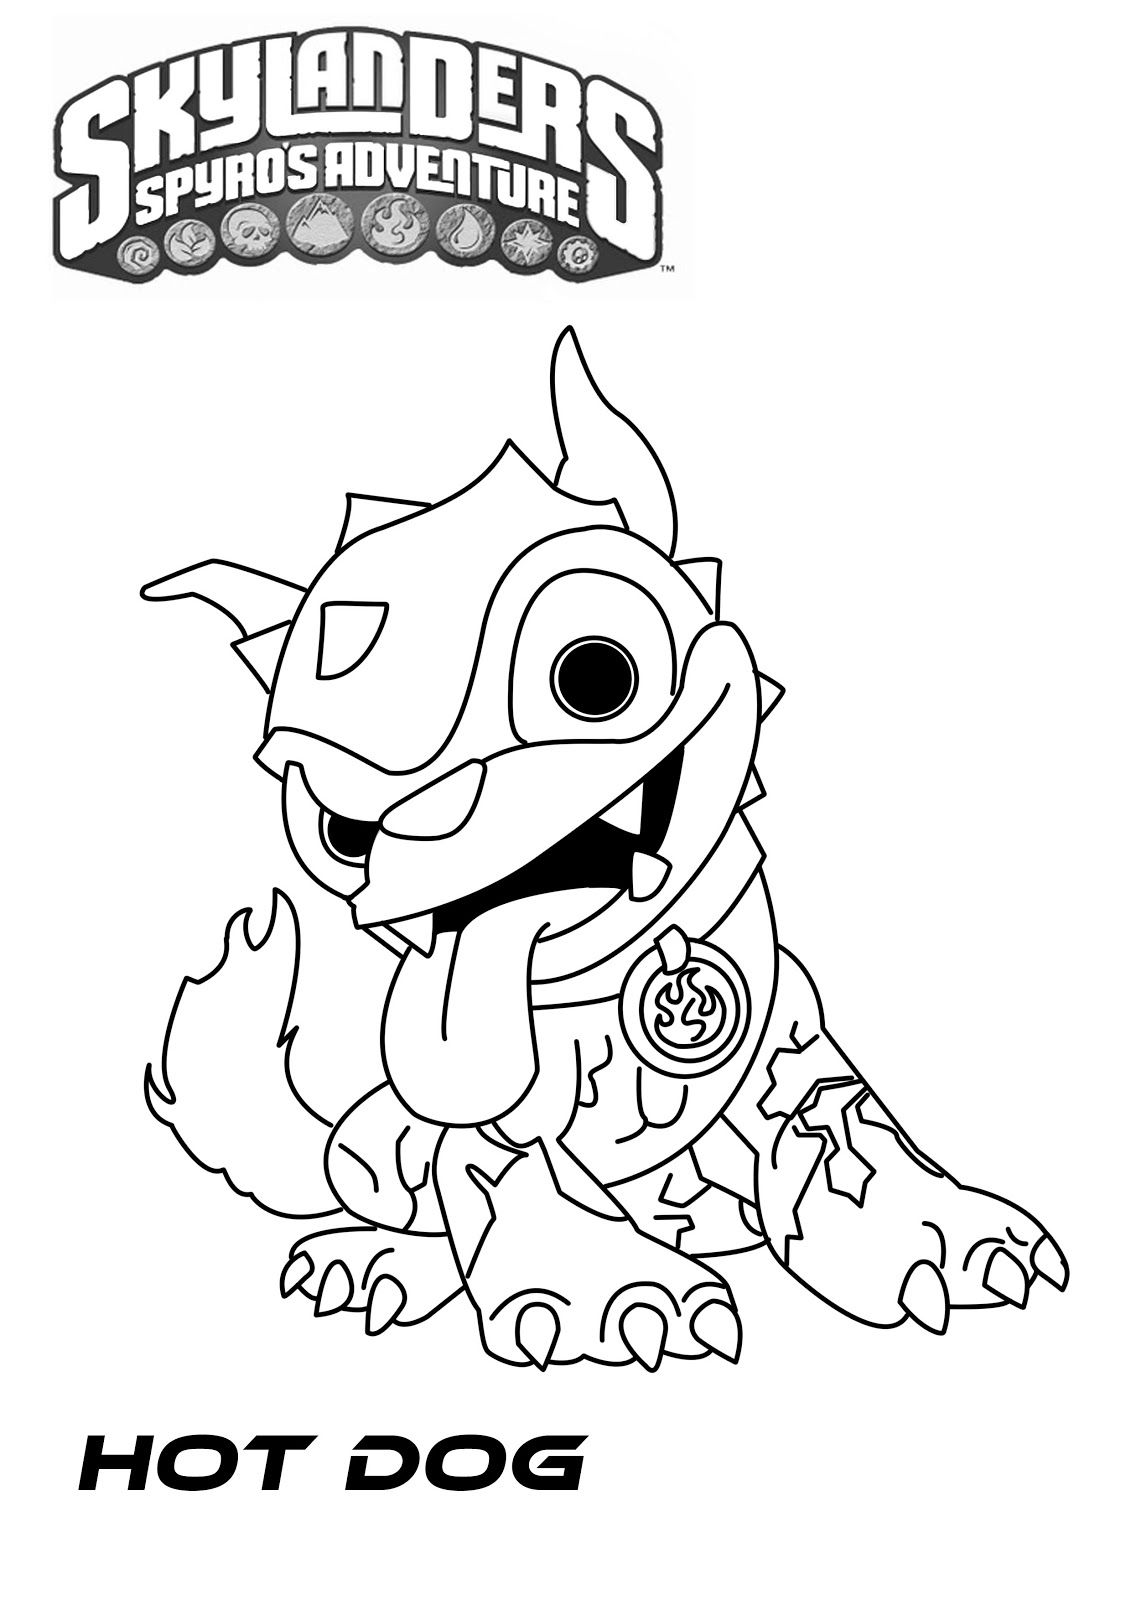 Skylander Hot Dog Coloring Pages Jpg 1131 1600 Dog Coloring